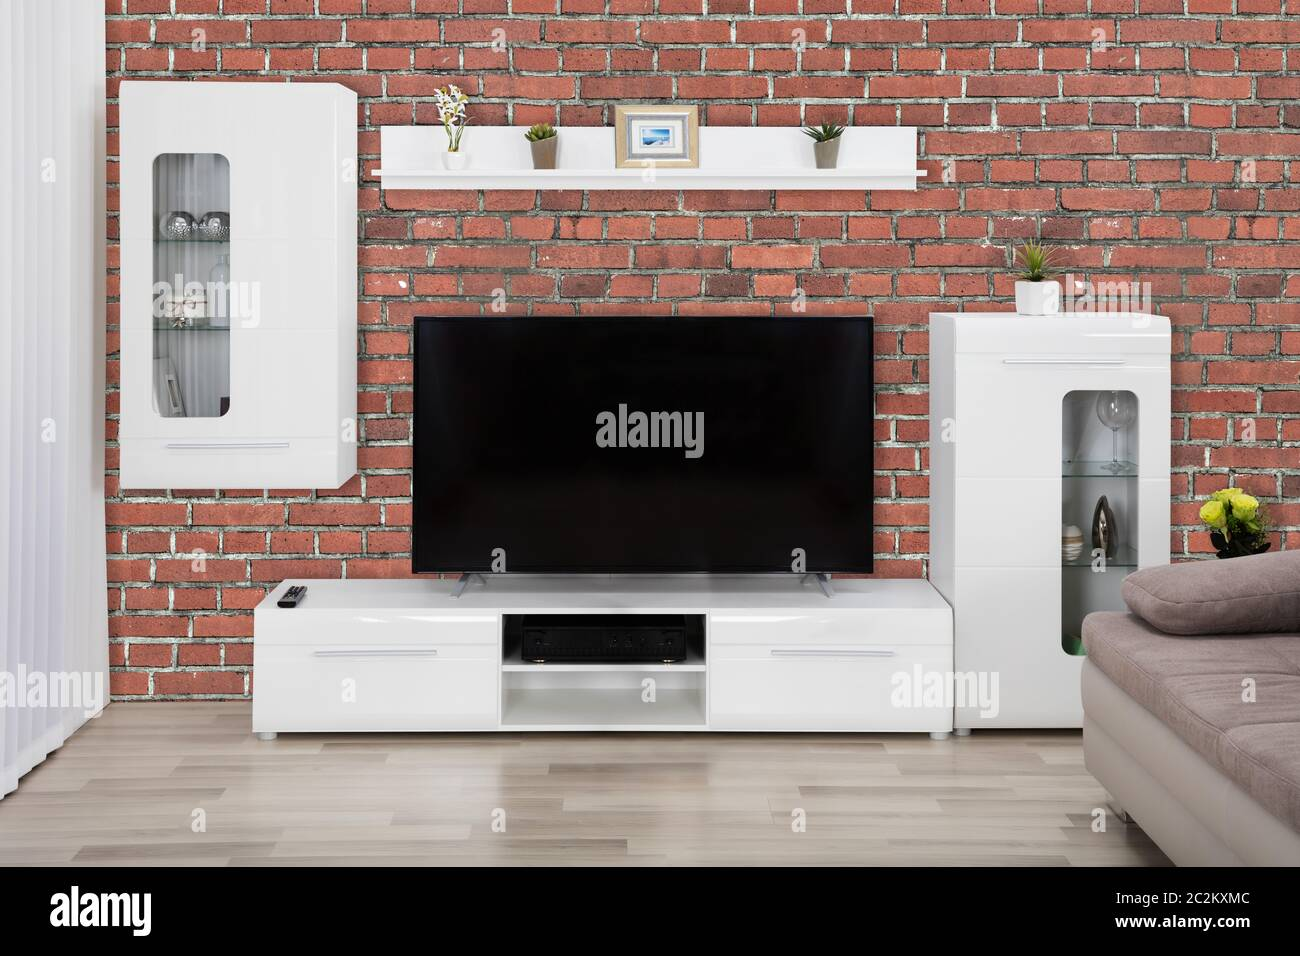 Showcase Interior And Flat Screen Lcd Television In Modern Interior Living Room Stock Photo Alamy